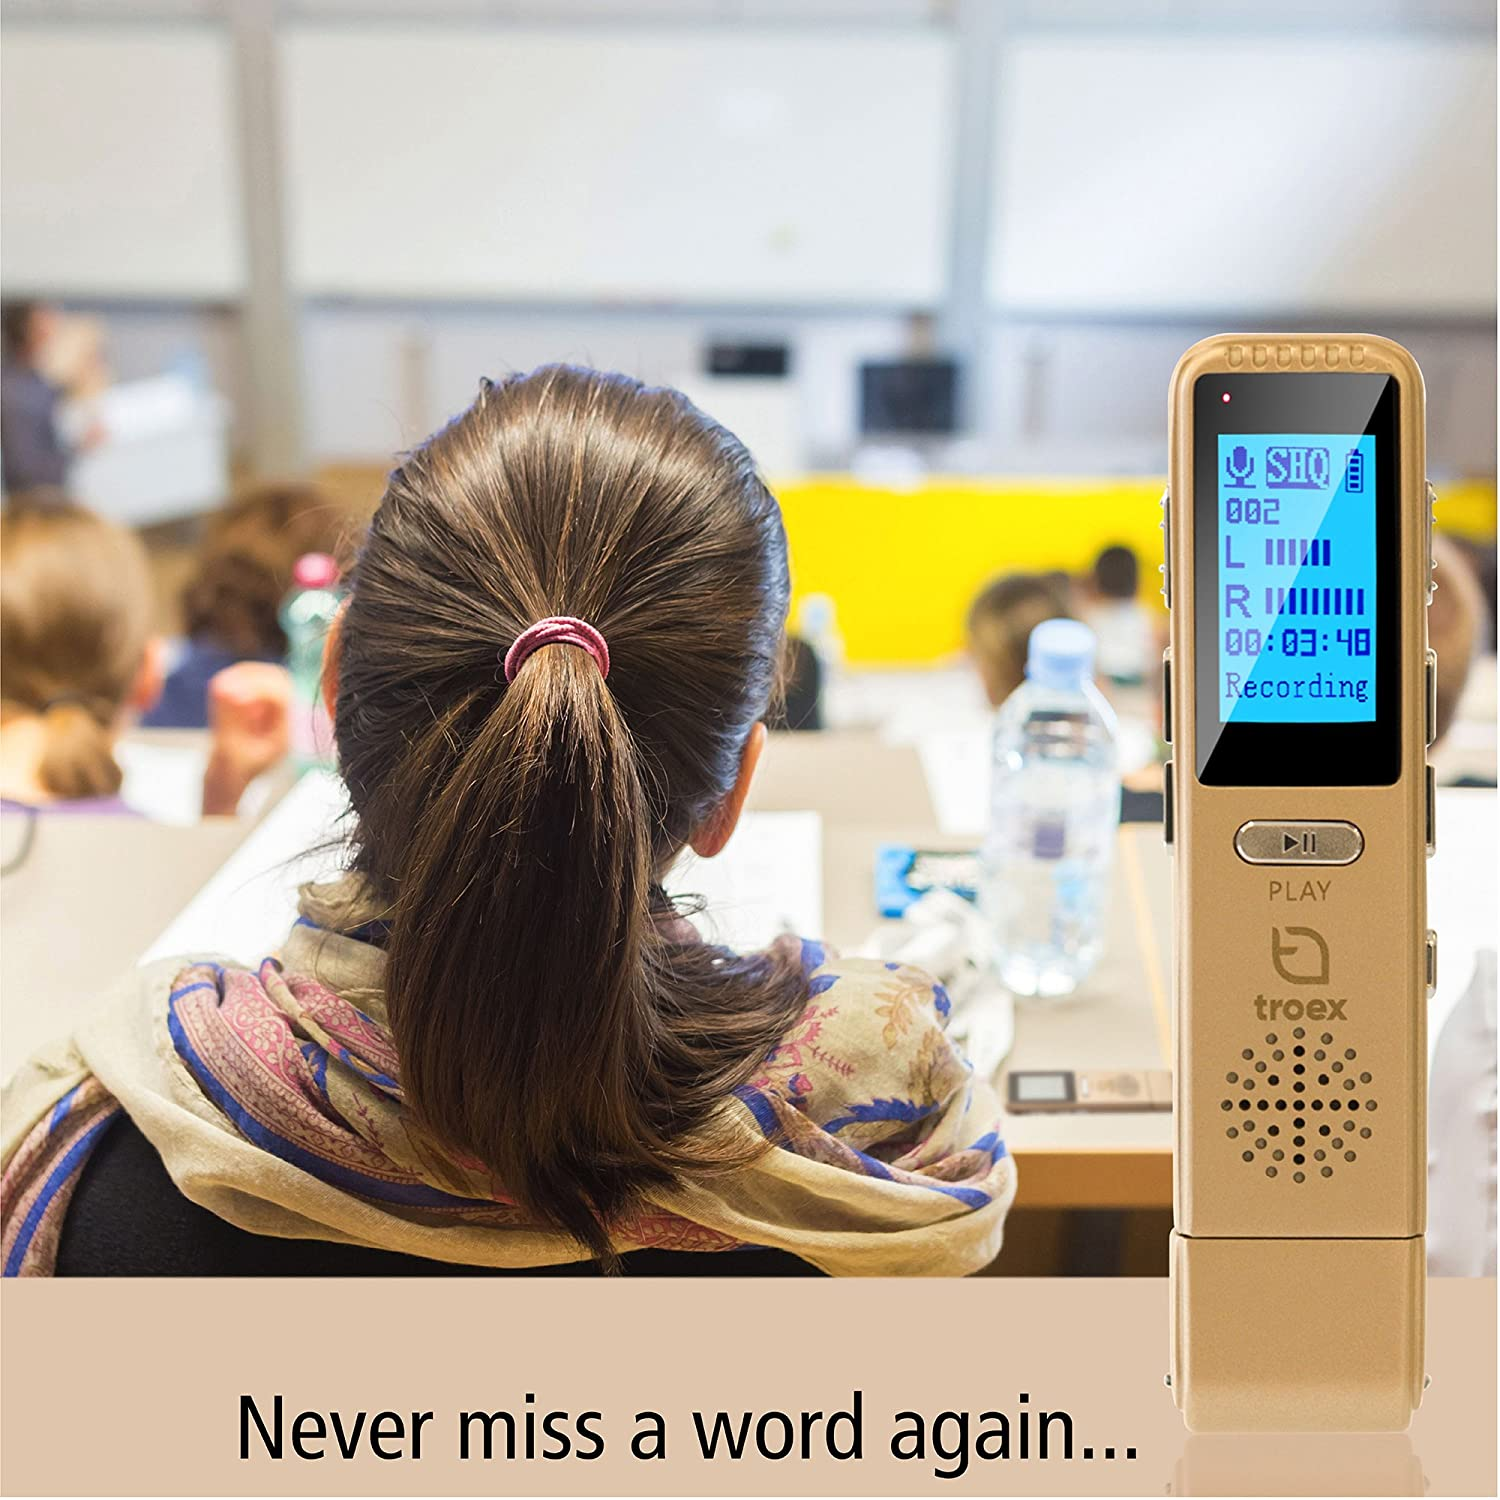 meeting PC or Mac compatible 8GB bird sound for recording lecture HD stereo mini USB audio recorders pen size silent dictaphone device memo TROEX digital voice recorder MP3 player